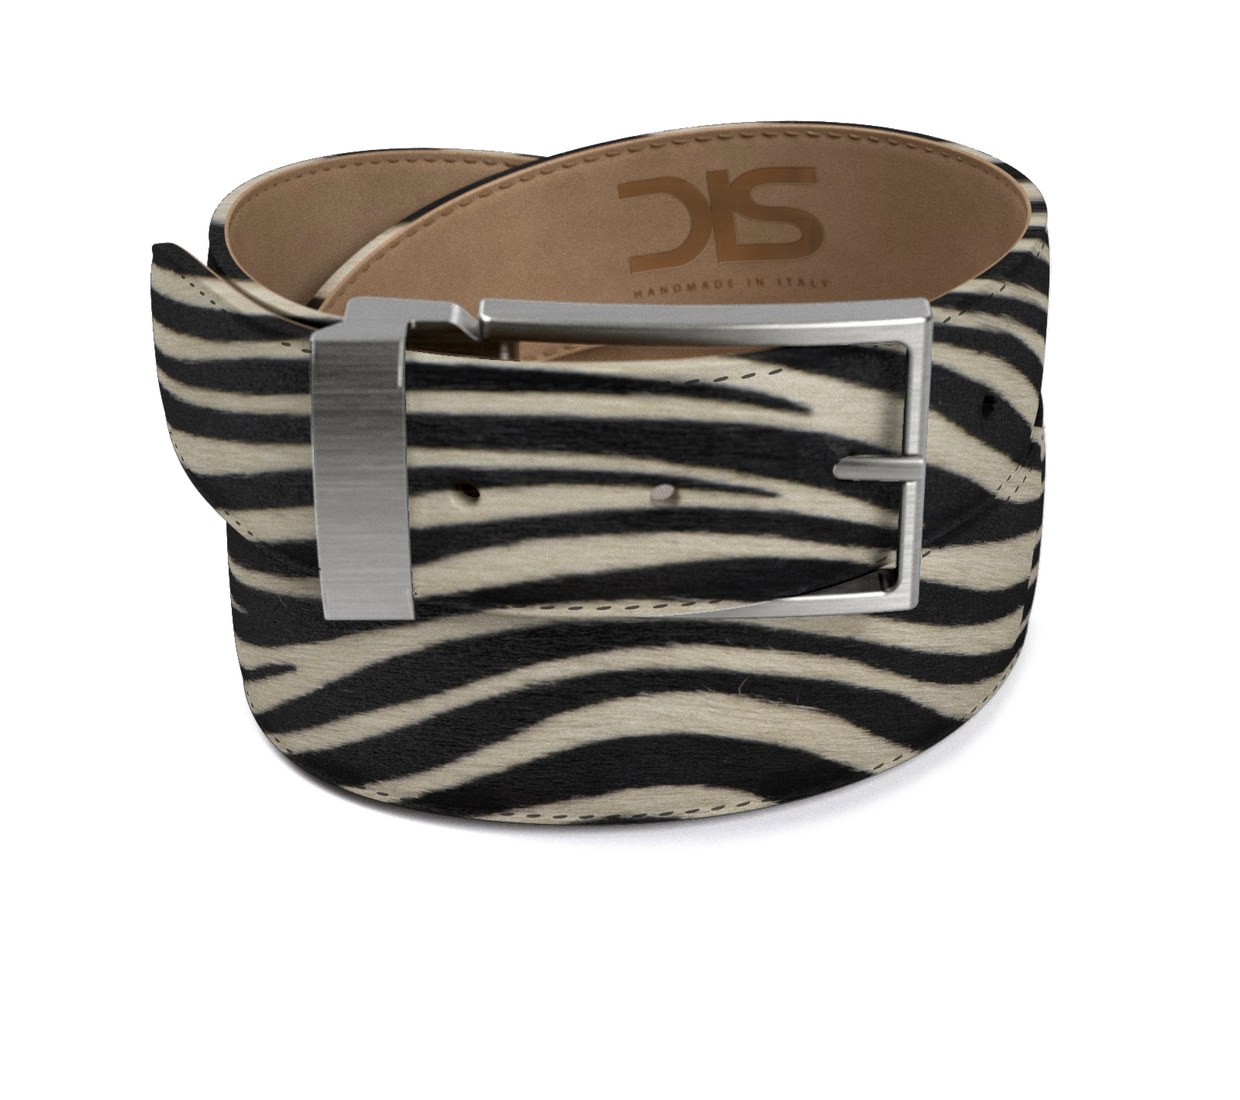 Zebra hairy leather belt with opaque buckle